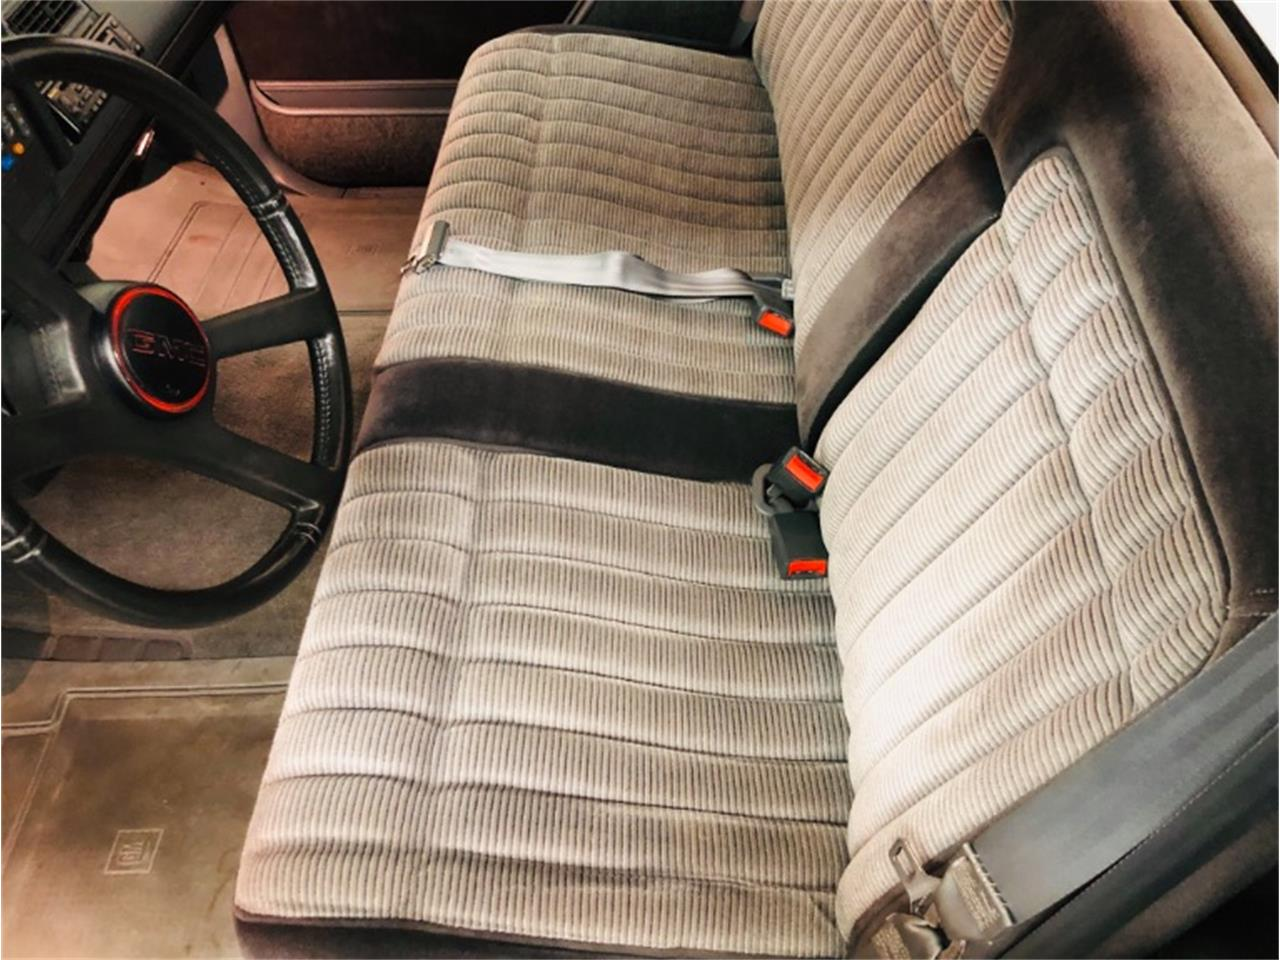 1990 GMC Pickup for sale in Mundelein, IL – photo 35